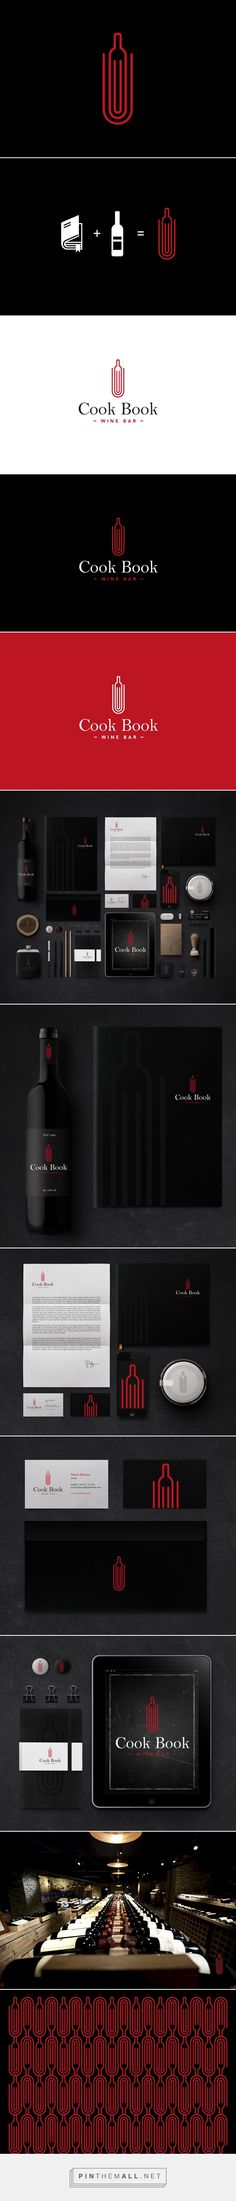 Cook Book Wine Bar by Sebastian Bednarek